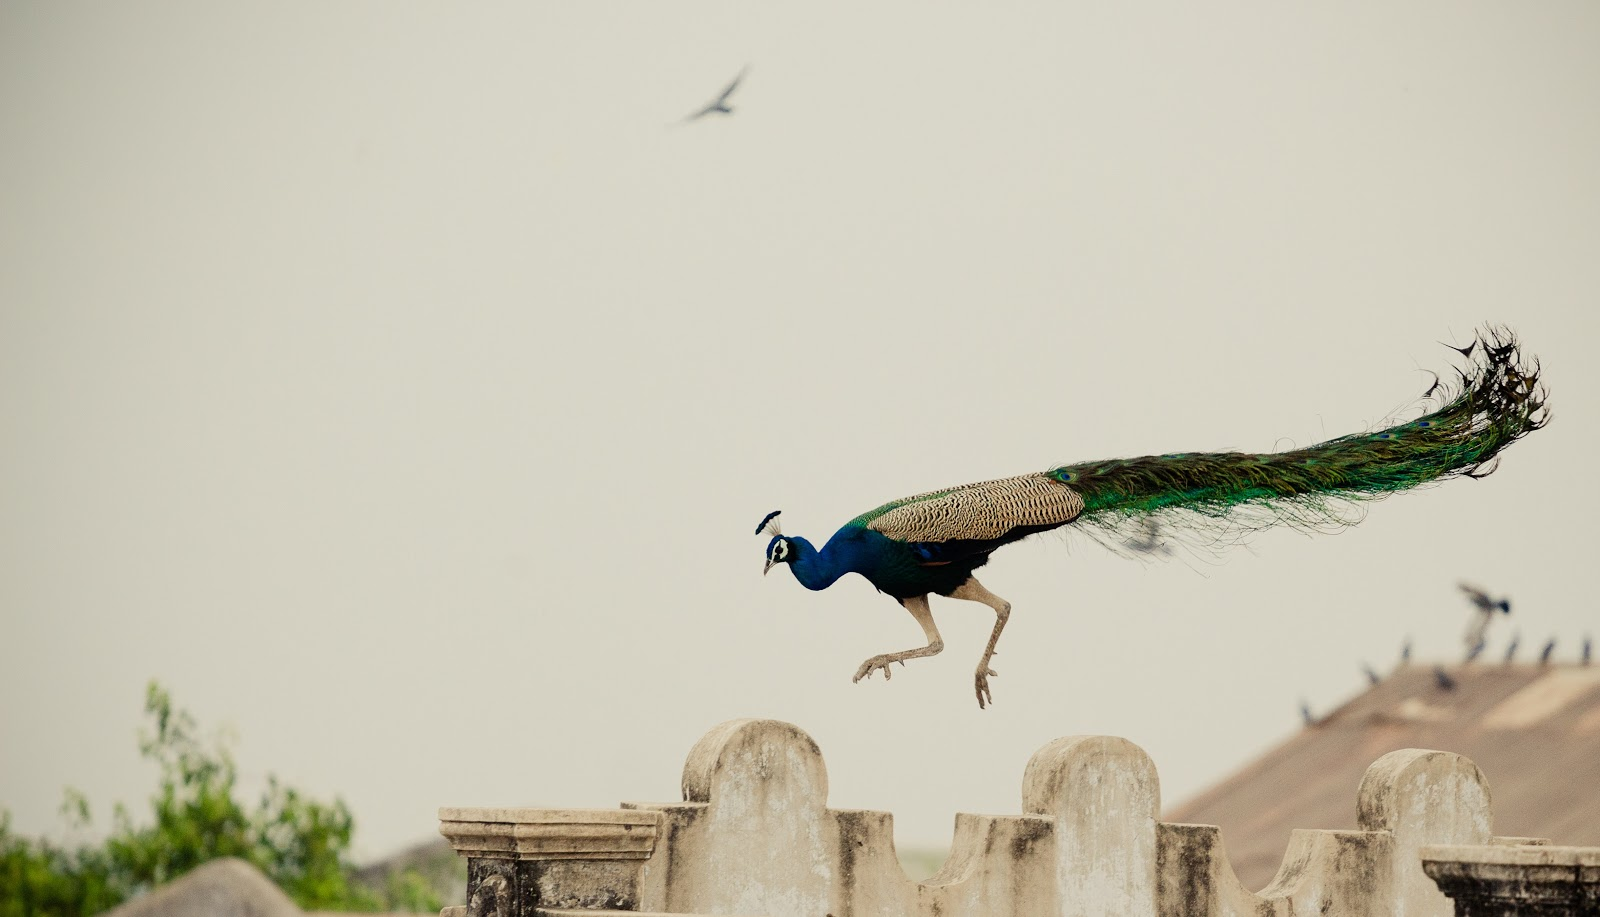 peacock-flying-above-concrete-surface-images